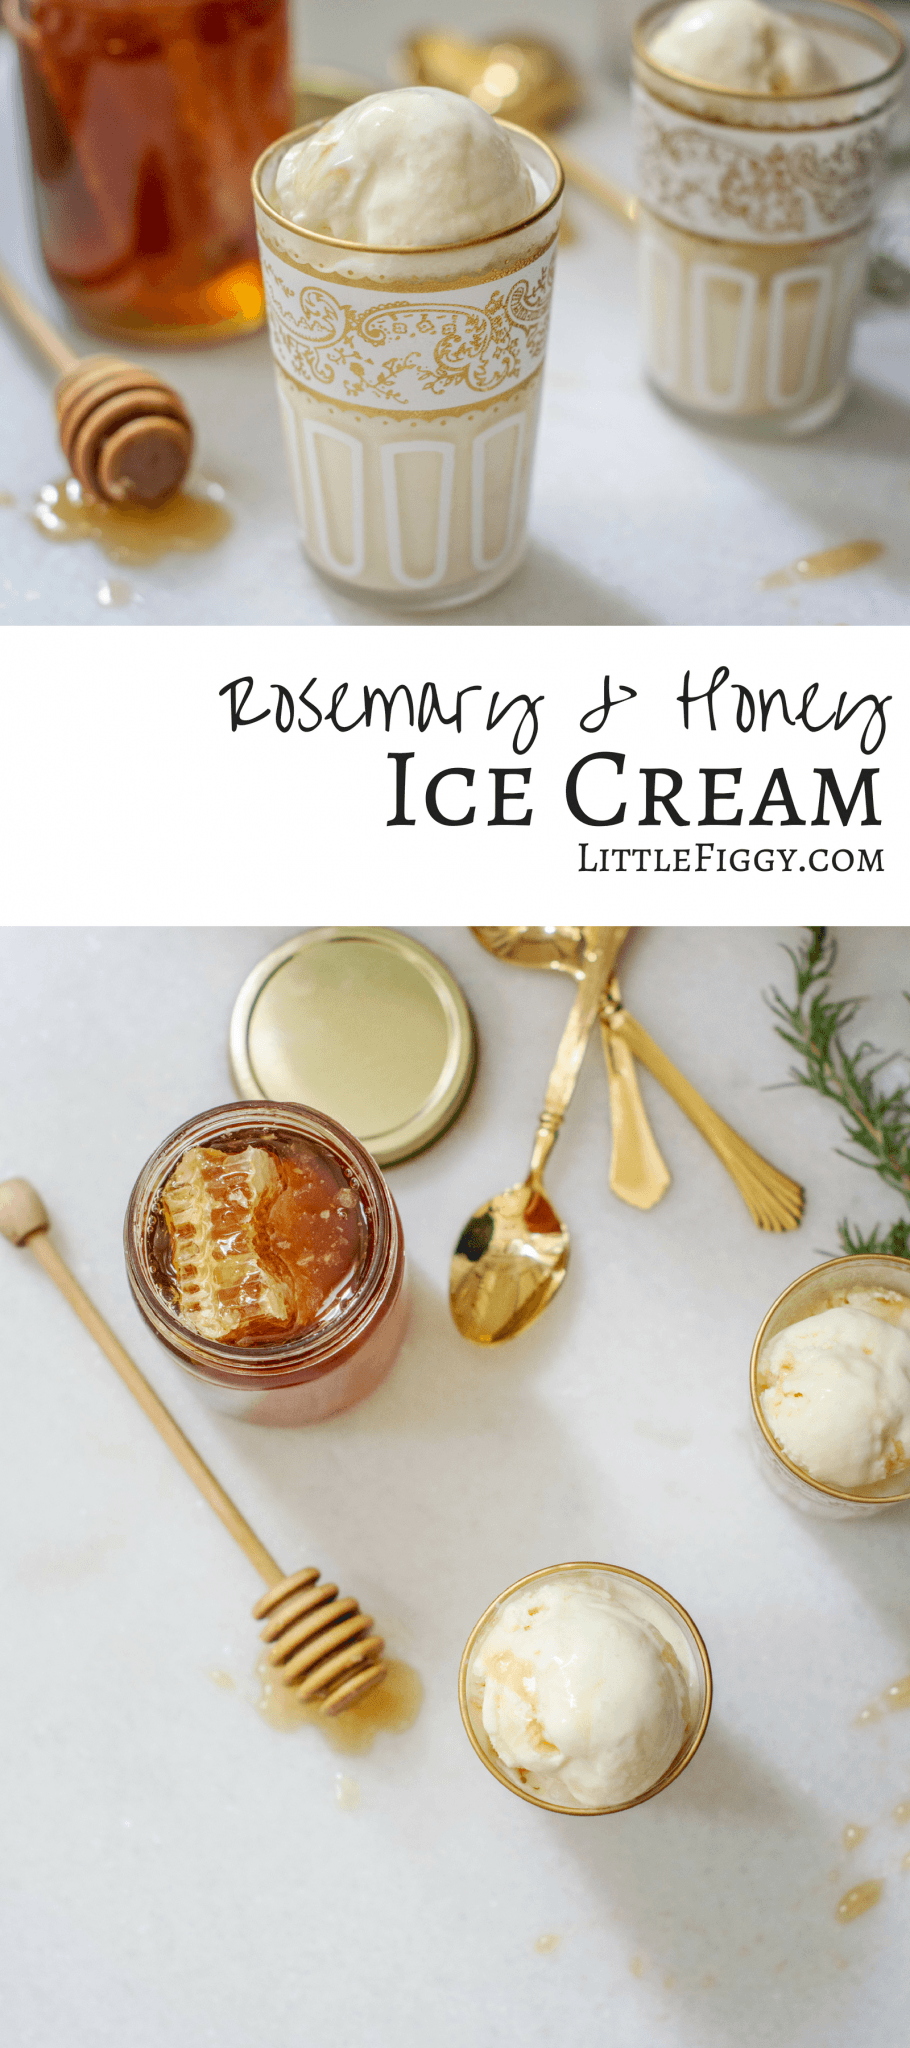 Make this simple ice cream recipe with understated flavors, Rosemary and Honey Ice Cream, so creamy and taste incredible, with light flavors that are perfectly balanced.#icecream #frozendesserts #recipe